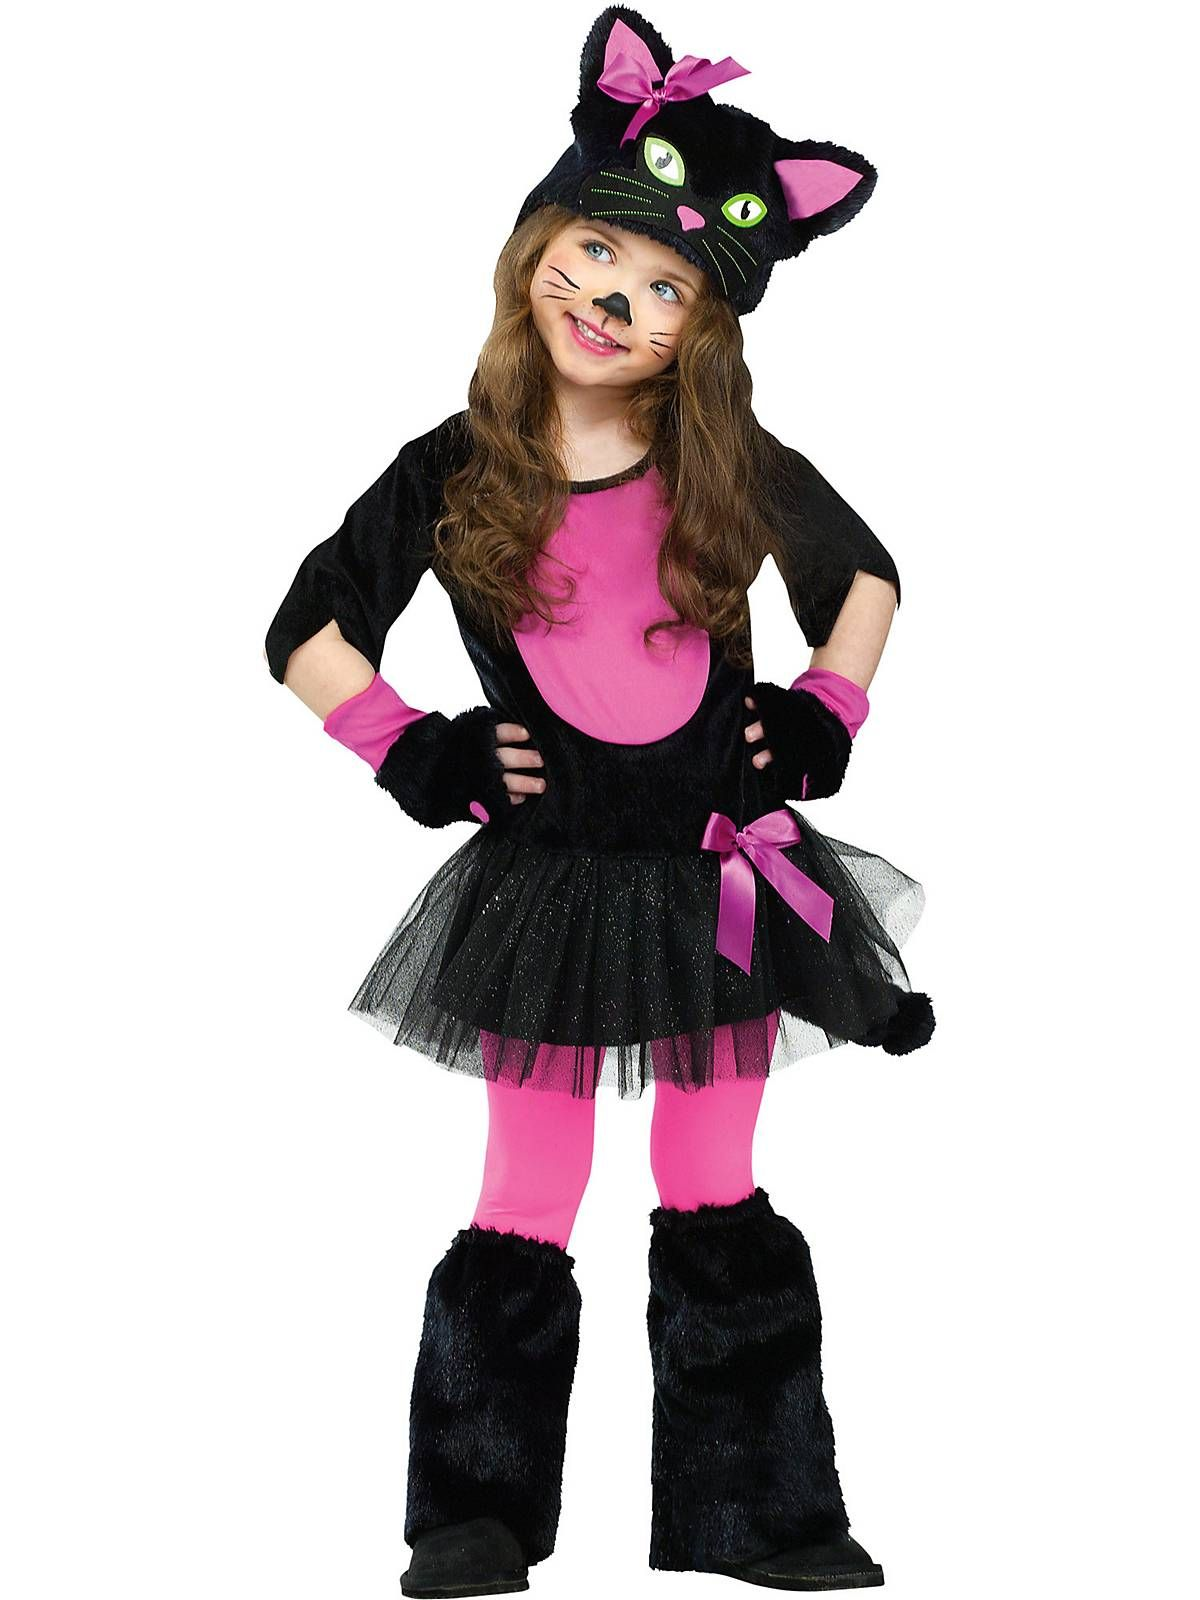 Girl's Miss Kitty Costume! See more costume ideas for